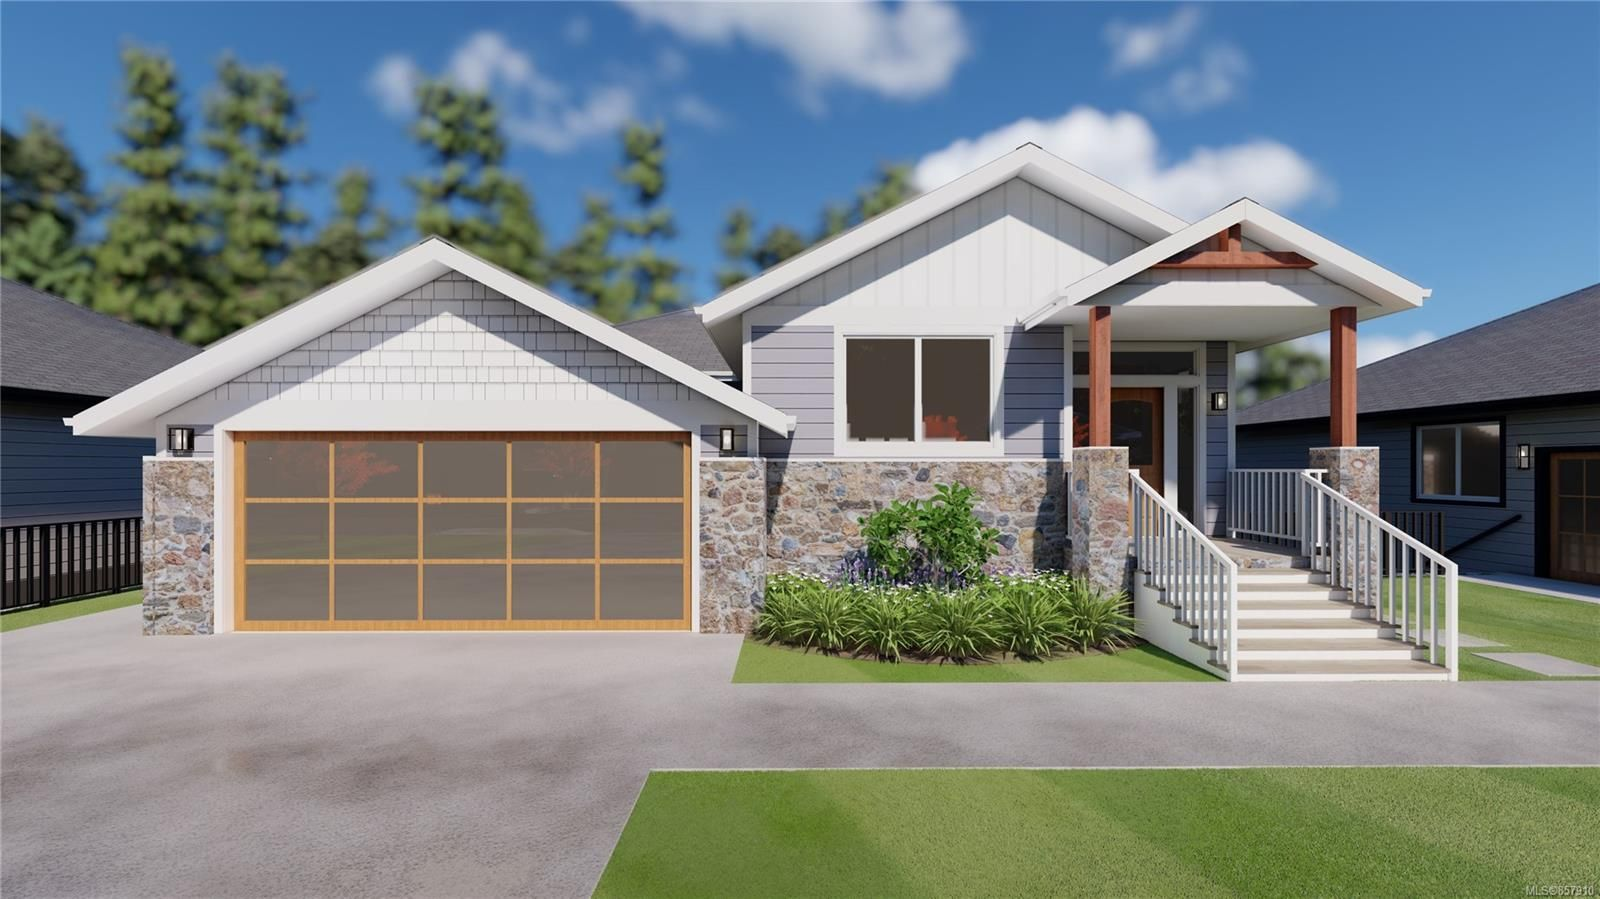 Pre-construction renderings (Actual colour codes used). Finished home may not be exactly as shown